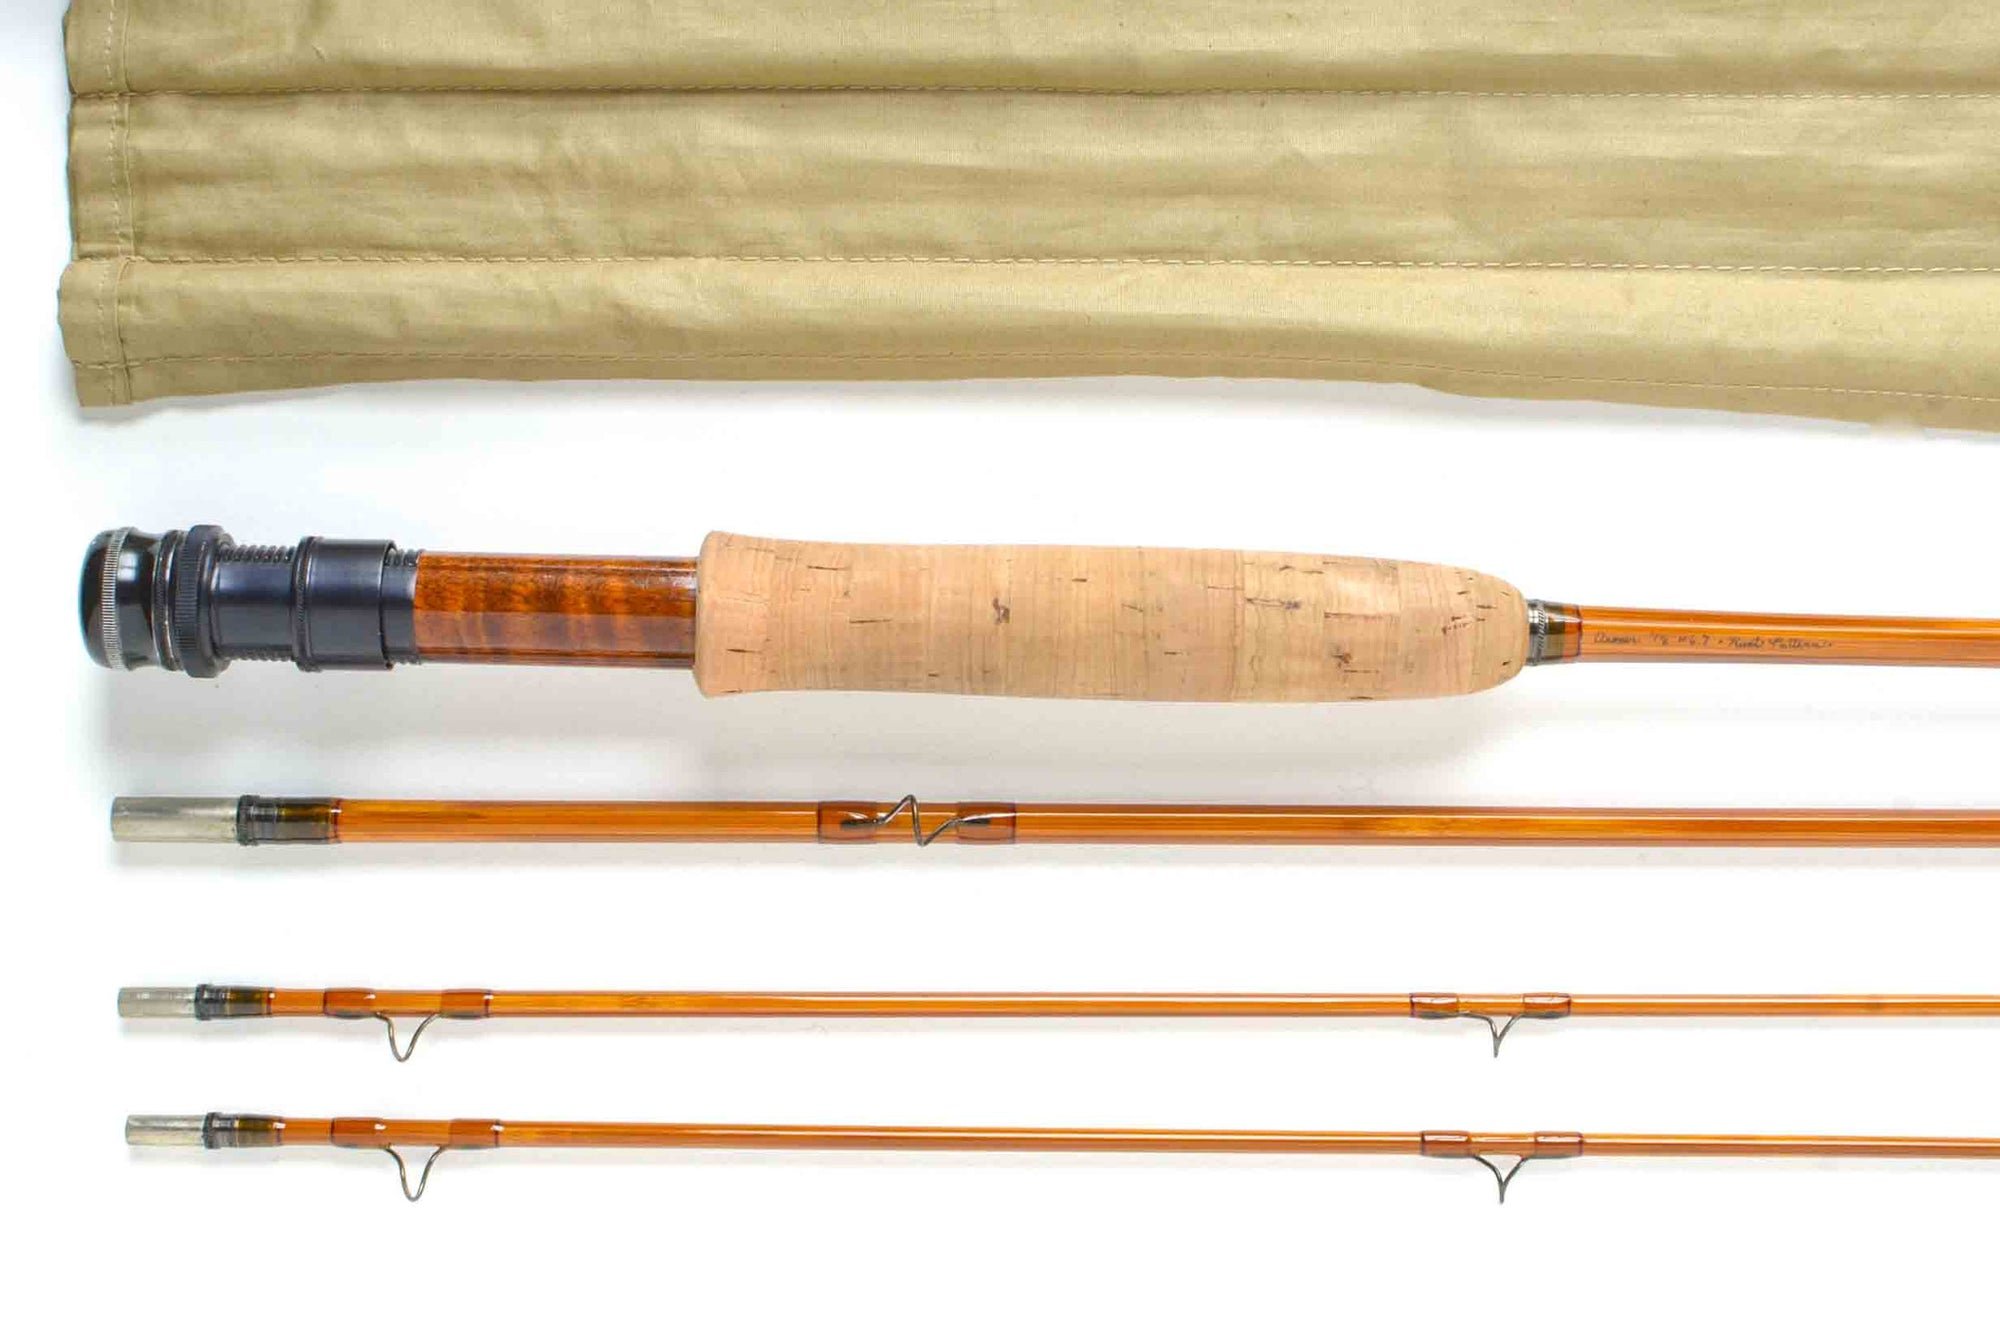 "Aroner 7'6"" 3/2 #6/7 Hunt Pattern Fly Rod"